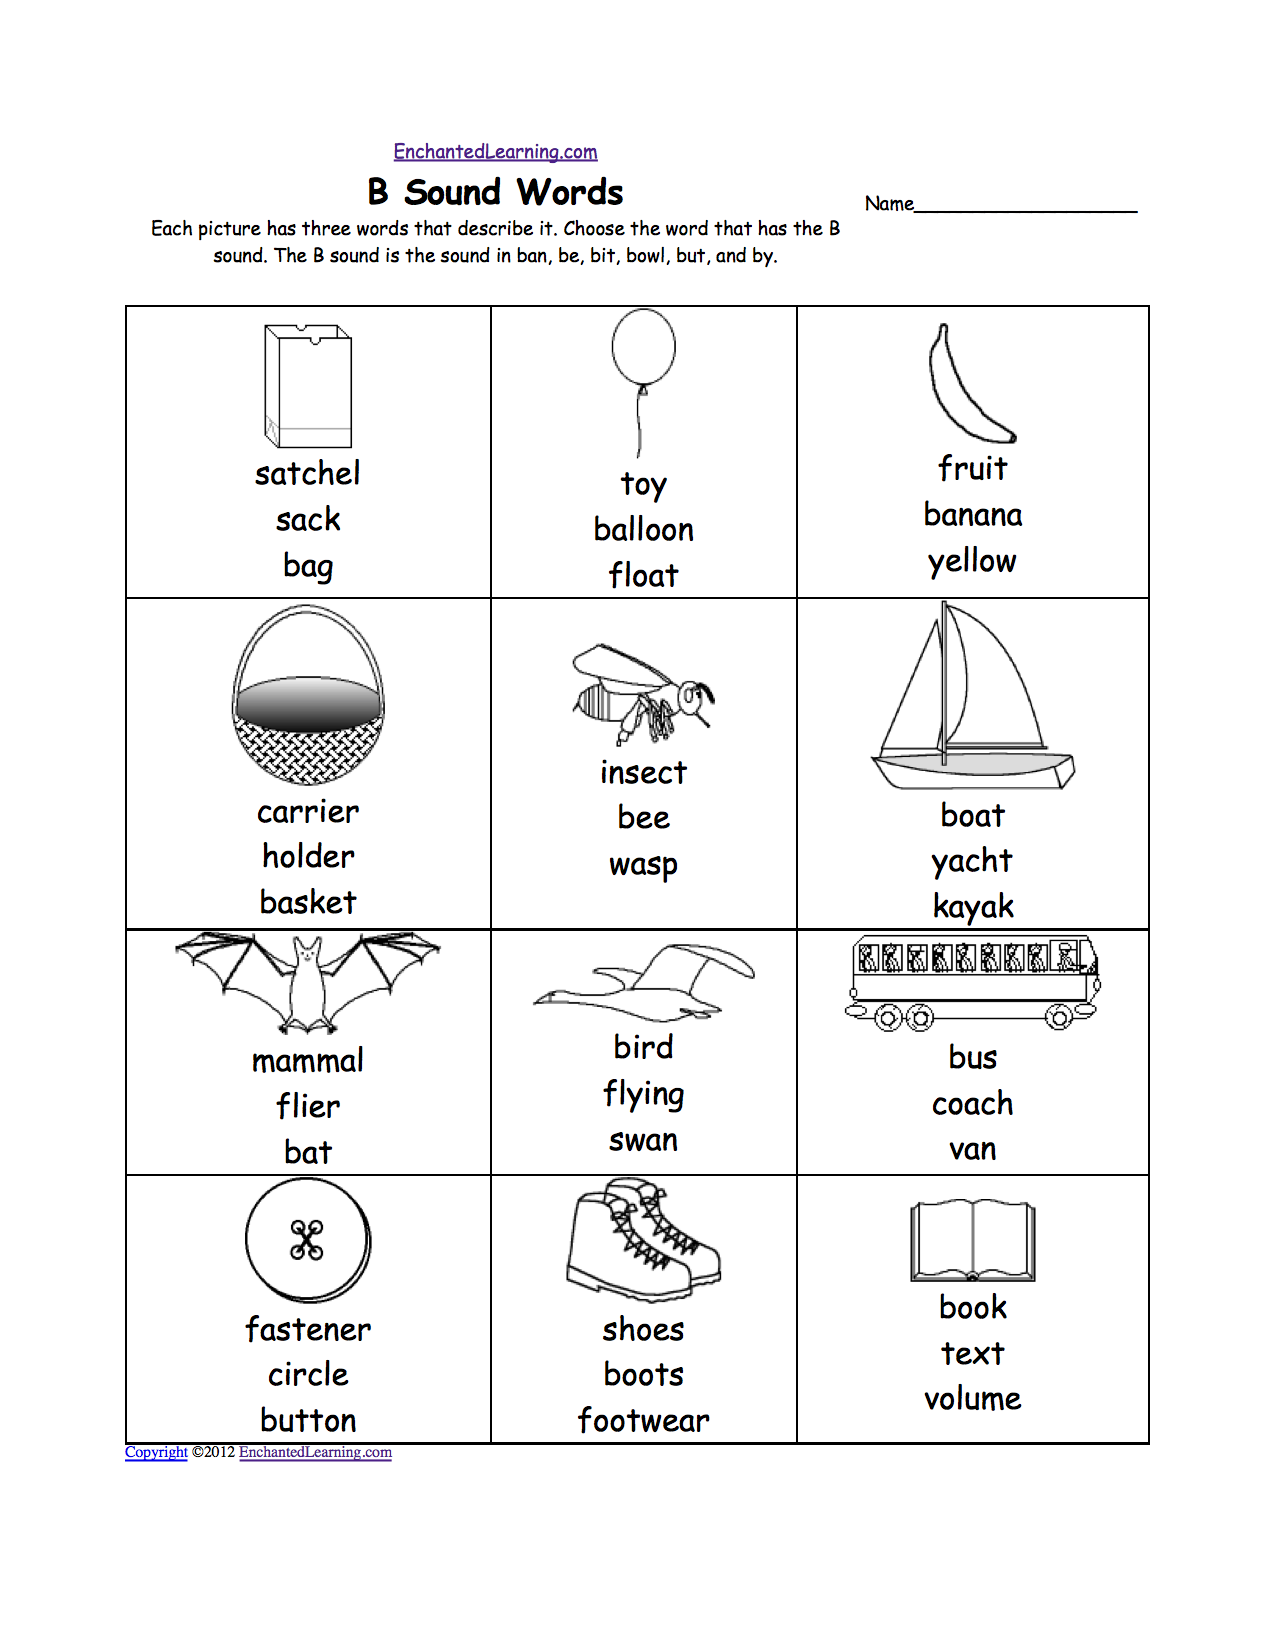 Weirdmailus  Winsome Phonics Worksheets Multiple Choice Worksheets To Print  With Handsome Quotbquot Sound Phonics Worksheet Multiple Choice Each Picture Has Three Words That Describe It Choose The Word That Has A Quotbquot Sound The Quotbquot Sound Is The Sound  With Awesome Calculating Averages Worksheet Also Grade Seven Math Worksheets In Addition Rd Grade Subtraction Worksheets With Regrouping And Phonics Free Printable Worksheets As Well As Internal Organs Worksheet Additionally Algebra Exercise Worksheets From Enchantedlearningcom With Weirdmailus  Handsome Phonics Worksheets Multiple Choice Worksheets To Print  With Awesome Quotbquot Sound Phonics Worksheet Multiple Choice Each Picture Has Three Words That Describe It Choose The Word That Has A Quotbquot Sound The Quotbquot Sound Is The Sound  And Winsome Calculating Averages Worksheet Also Grade Seven Math Worksheets In Addition Rd Grade Subtraction Worksheets With Regrouping From Enchantedlearningcom